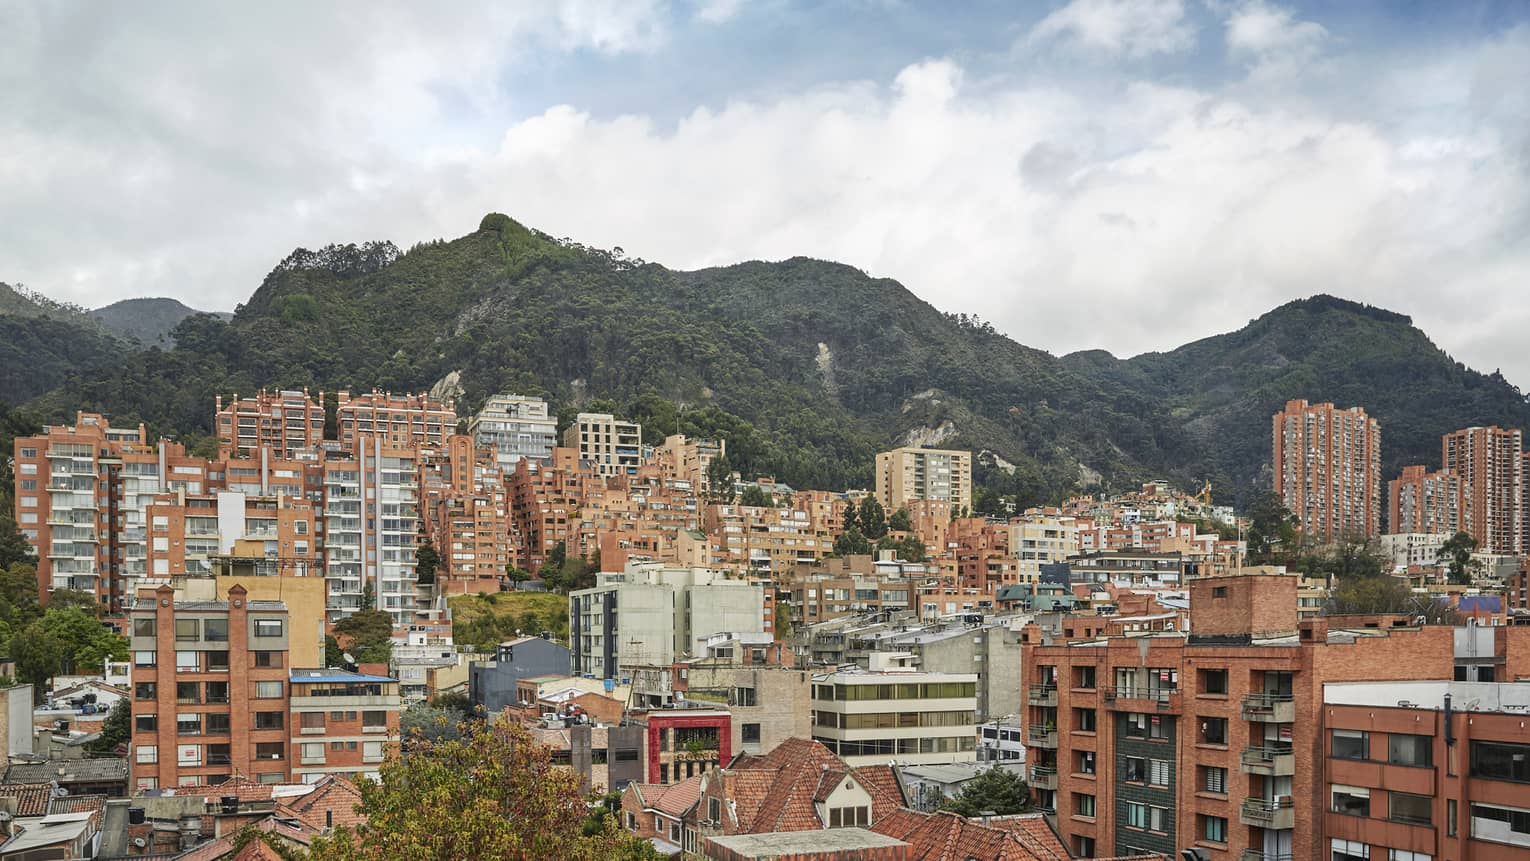 View of Bogota city skyline with buildings in front of tall mountains